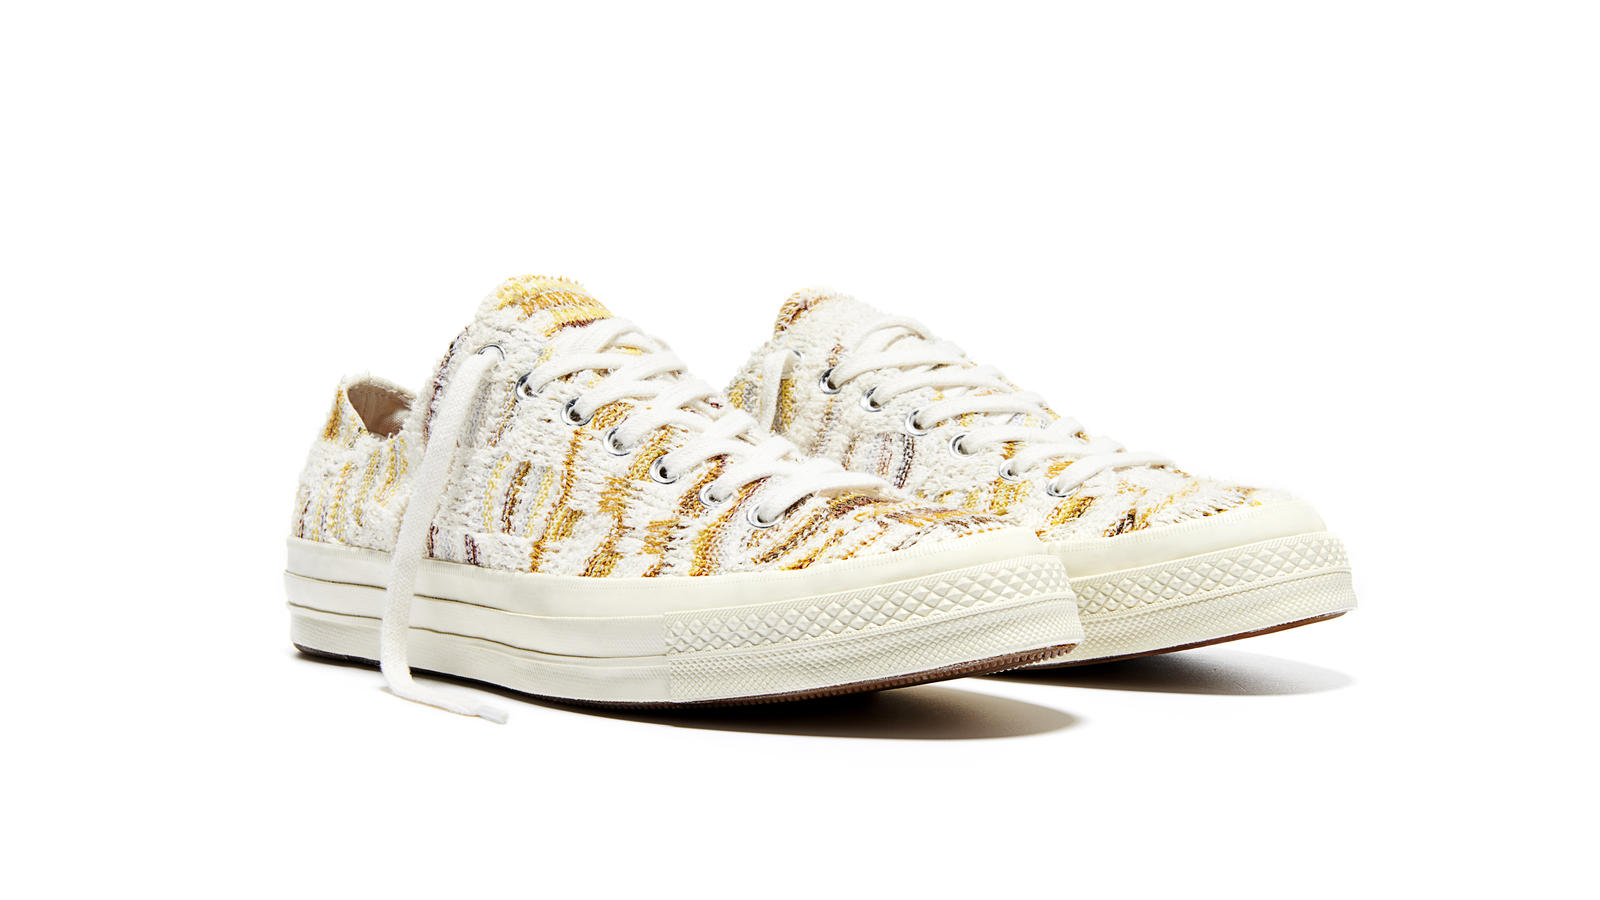 CONVERSE PRESENTS SU15 CHUCK TAYLOR ALL STAR FIRST STRING ... 5c23c49fe